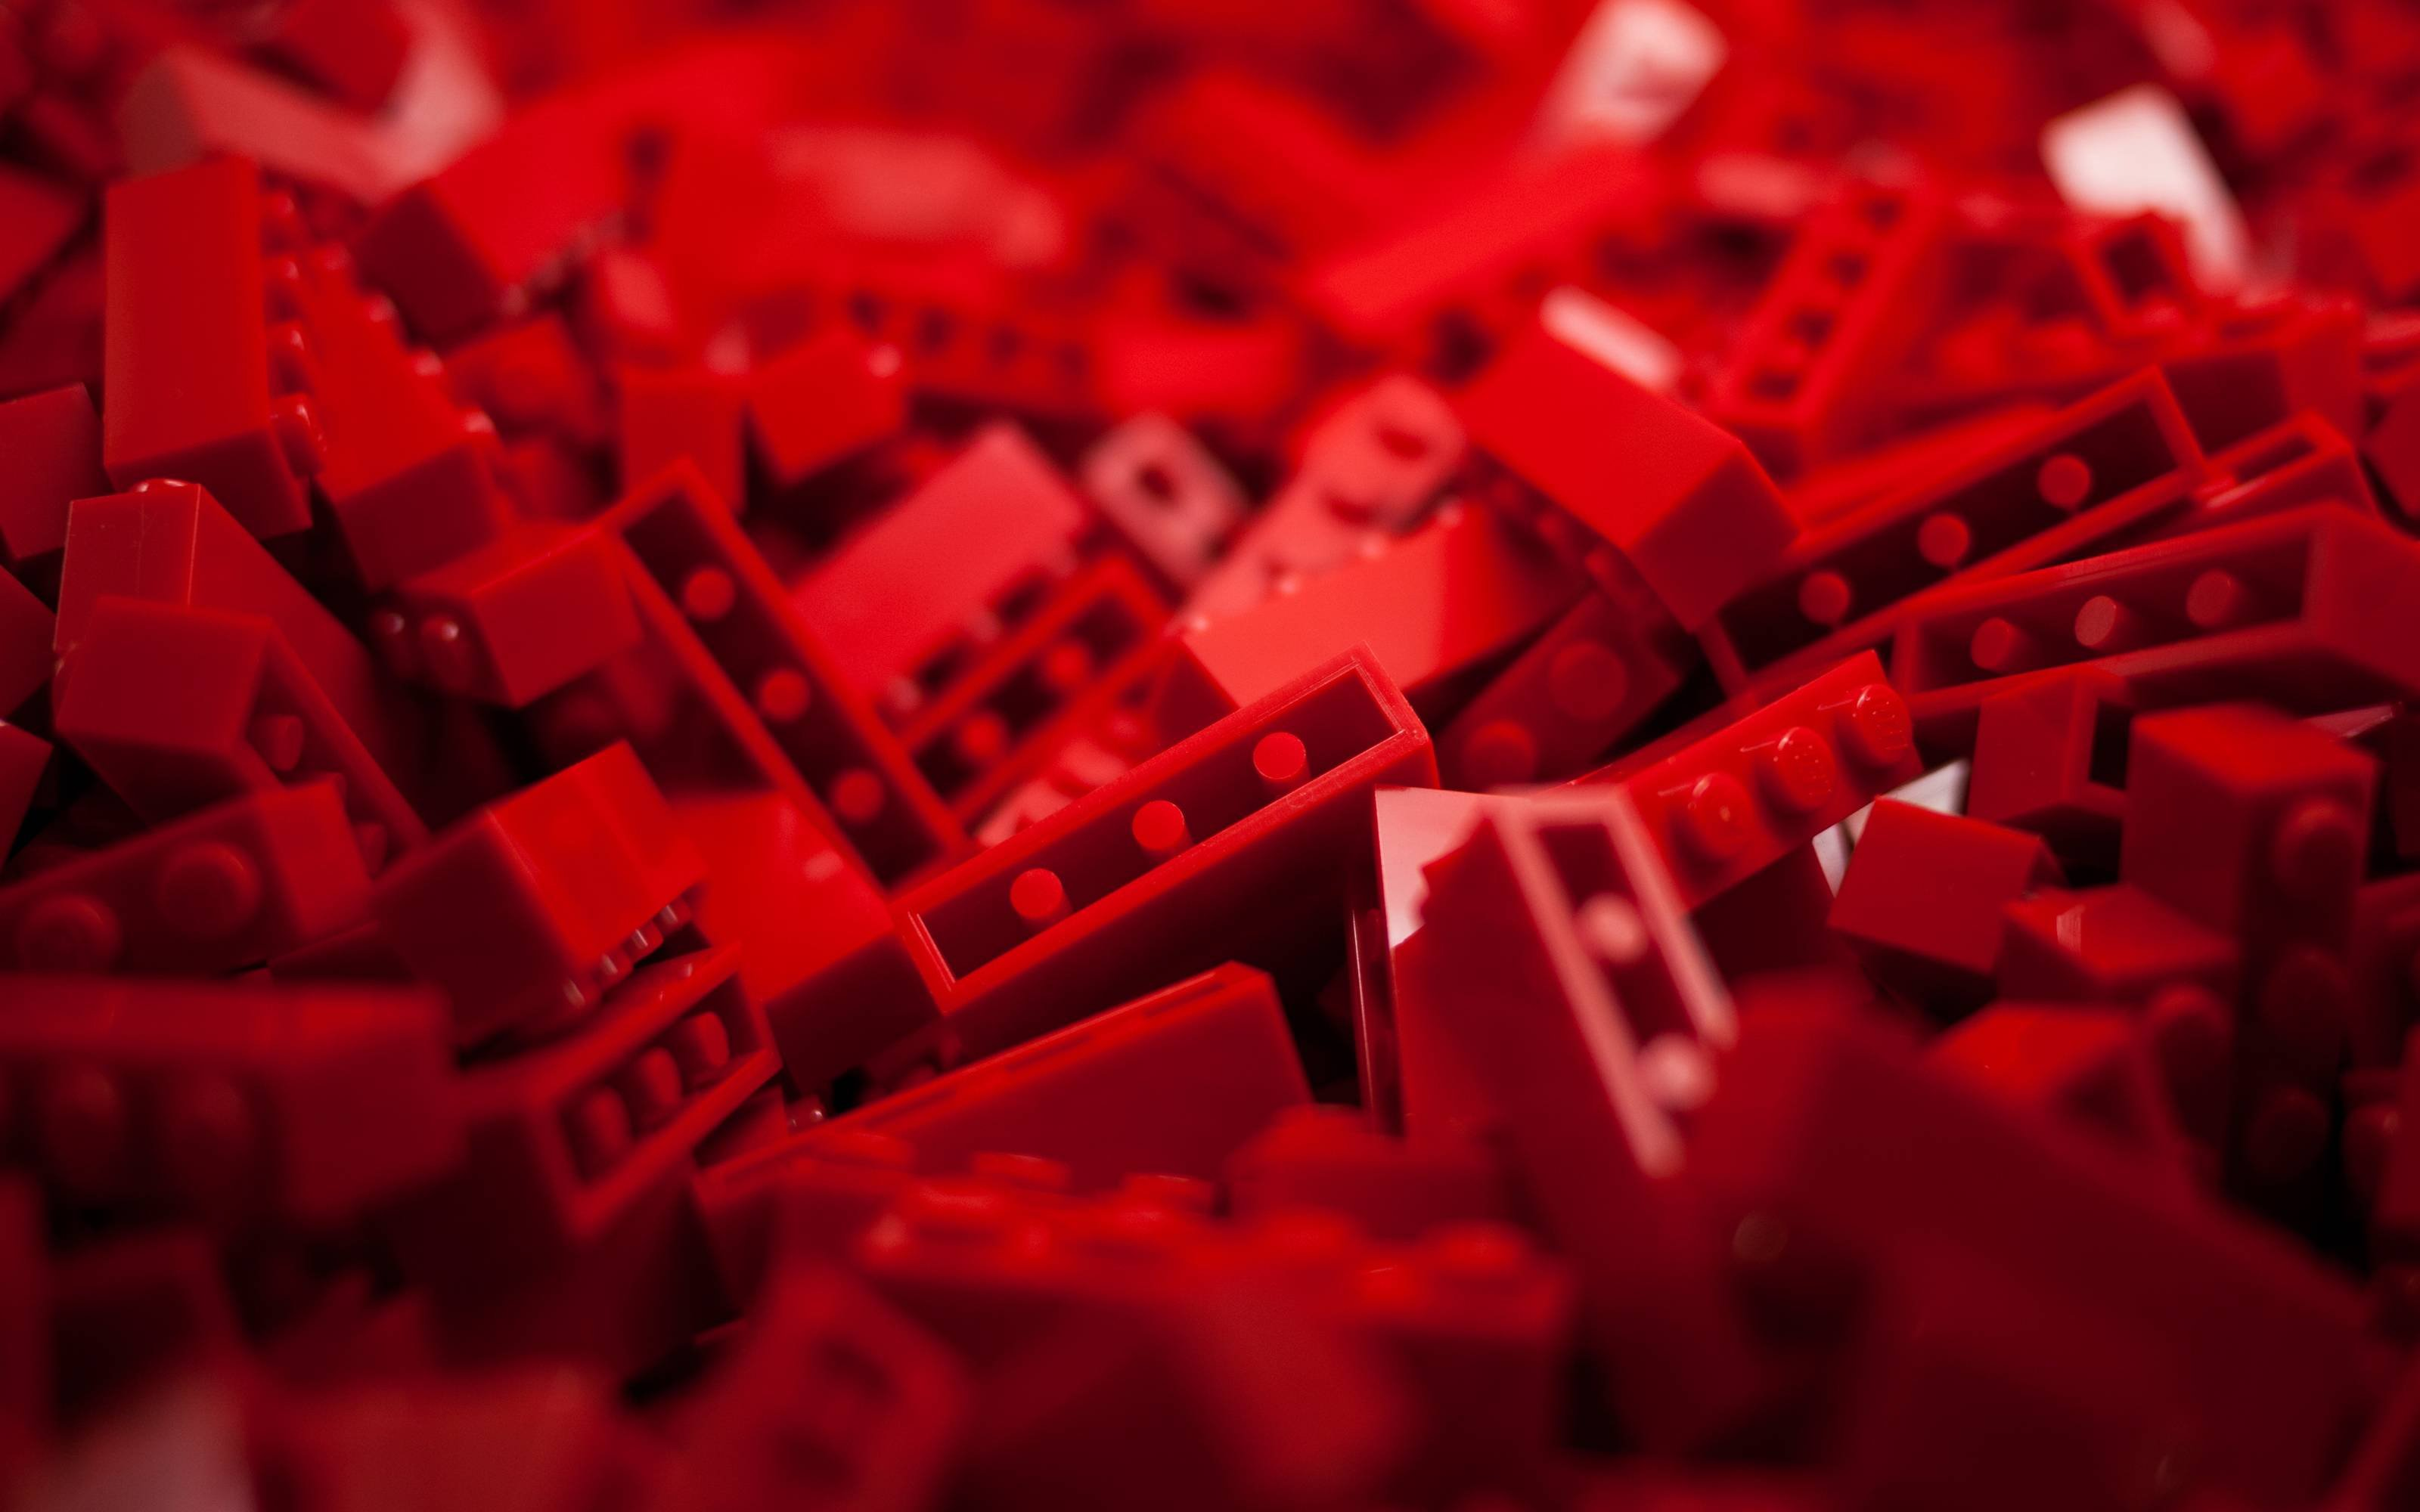 Lego 4k Wallpapers For Your Desktop Or Mobile Screen Free And Easy To Download